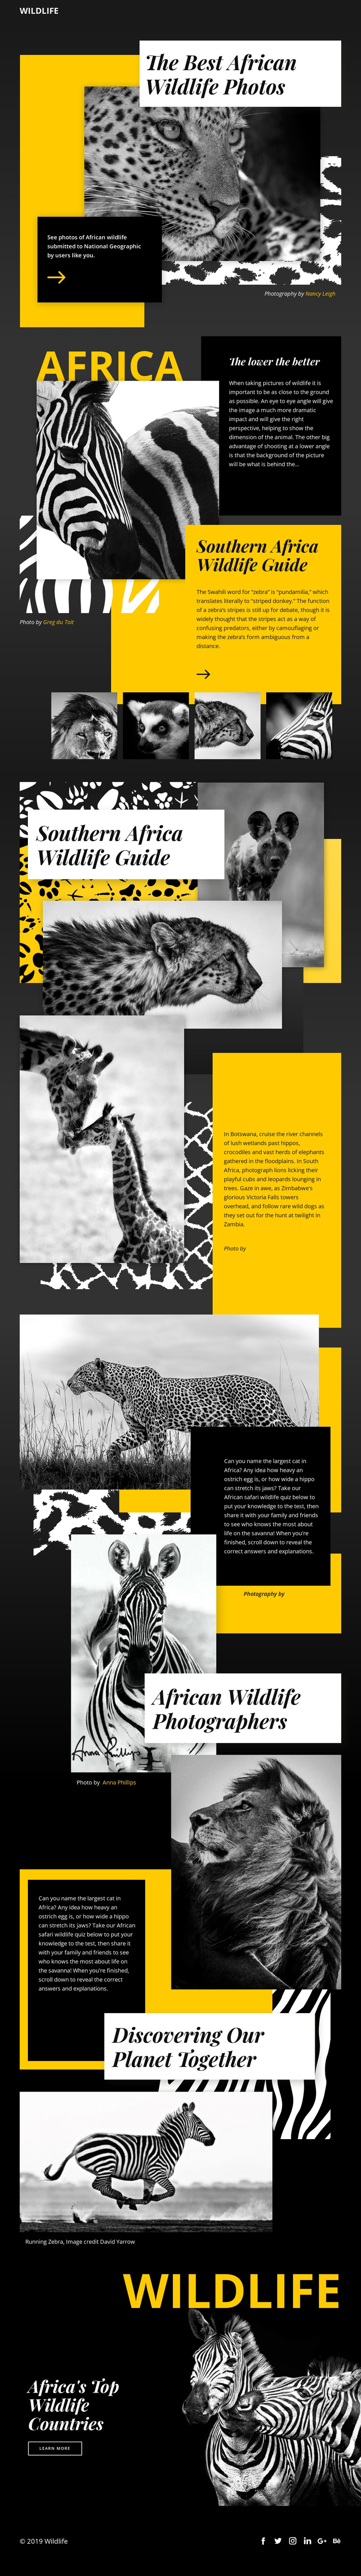 Wildlife Photos HTML5 Template